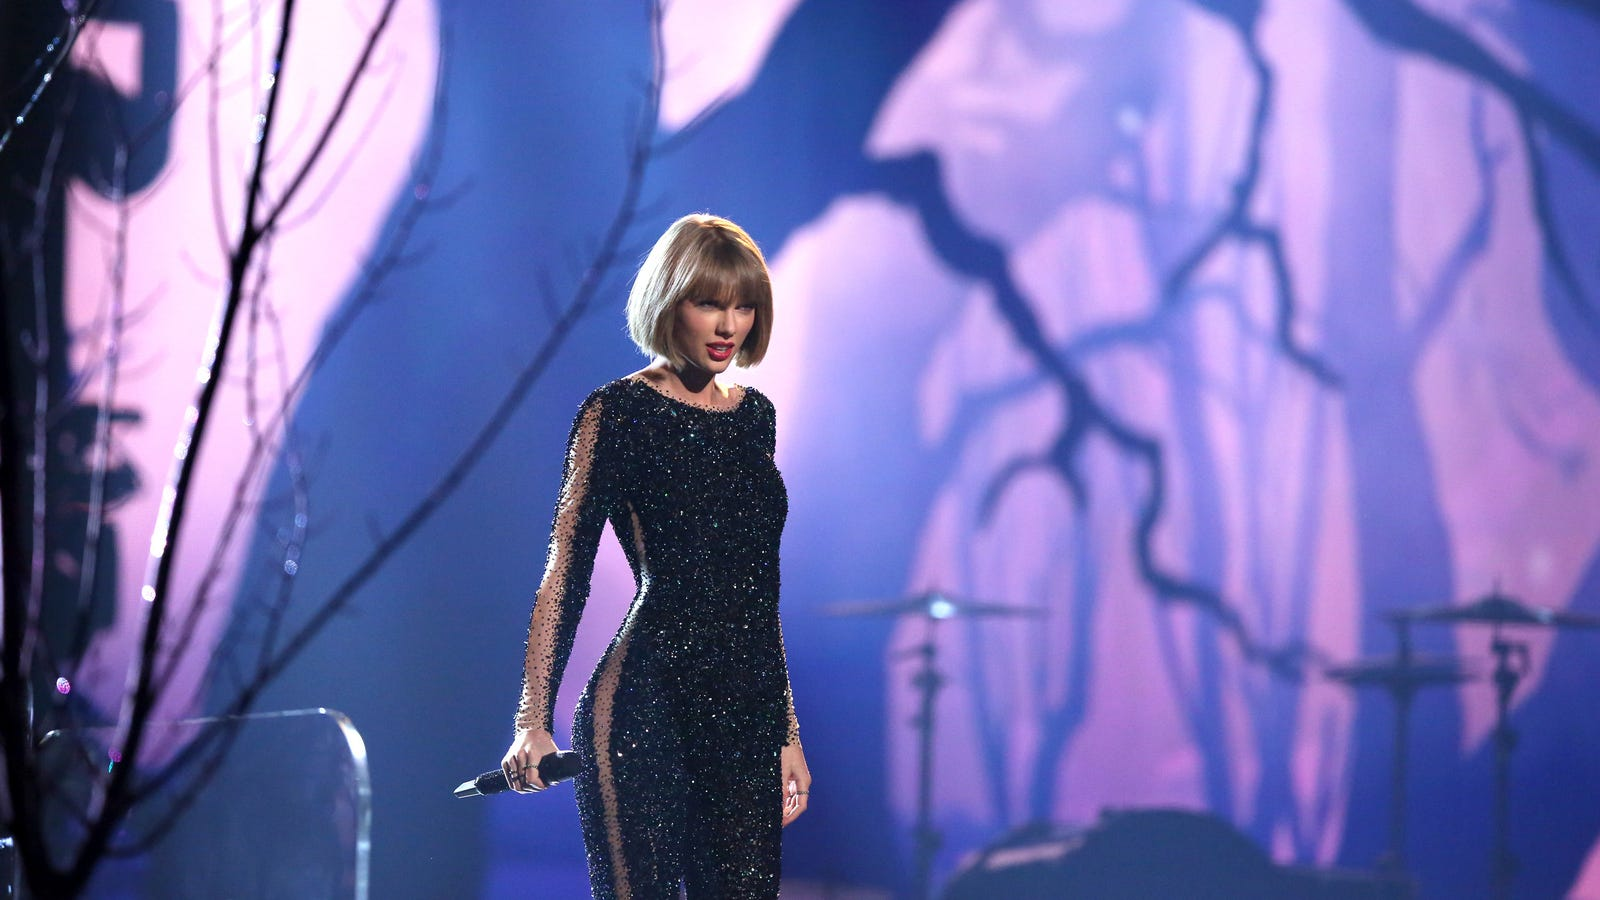 The Lawsuit Against Taylor Swift Has Been Thrown Out